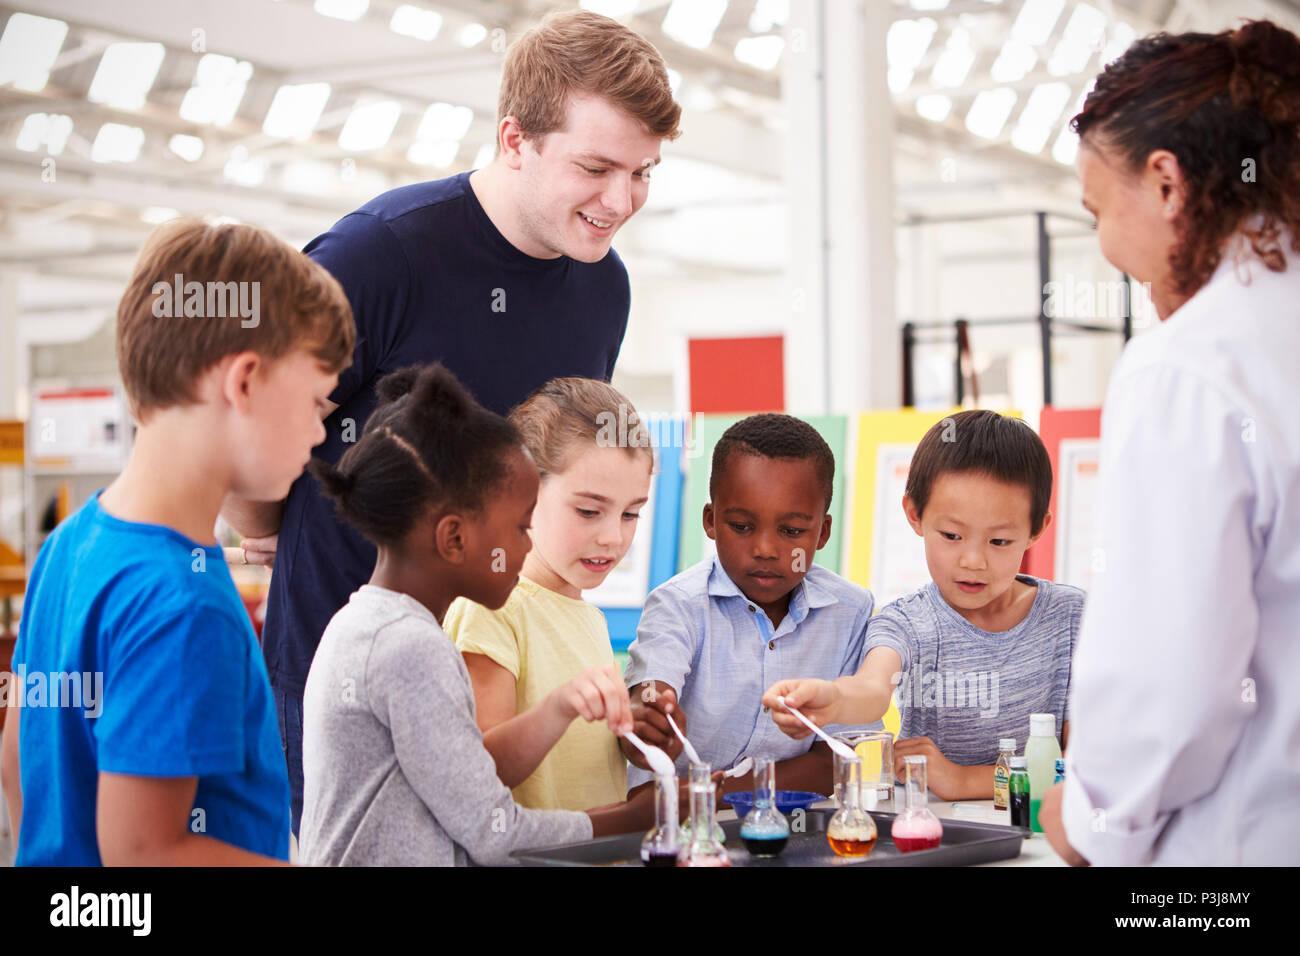 School kids taking part in a science experiment, close up - Stock Image